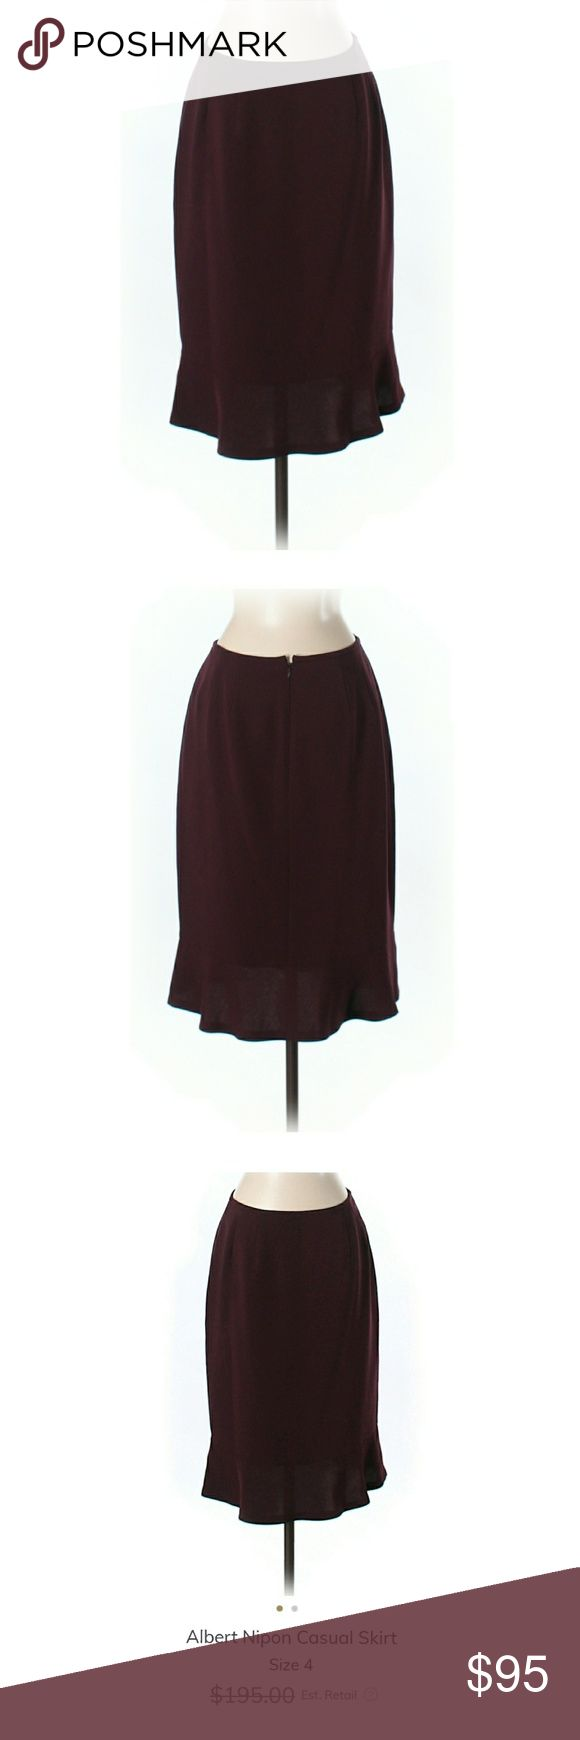 """NWOT Albert Nipon Pencil Skirt 71% Triacicetate, 29% Polyester. 23"""" Length. Beautiful dark burgundy color in lovely silhouette. It won't be available for me to ship until next week. I will PRICE DROP then, so *like* to be notified!       ***I'm lucky that my buyers have been nothing short of wonderful, but I video record all purchases before and during the packaging process to protect from scammers ☺ Albert Nipon Skirts Pencil"""